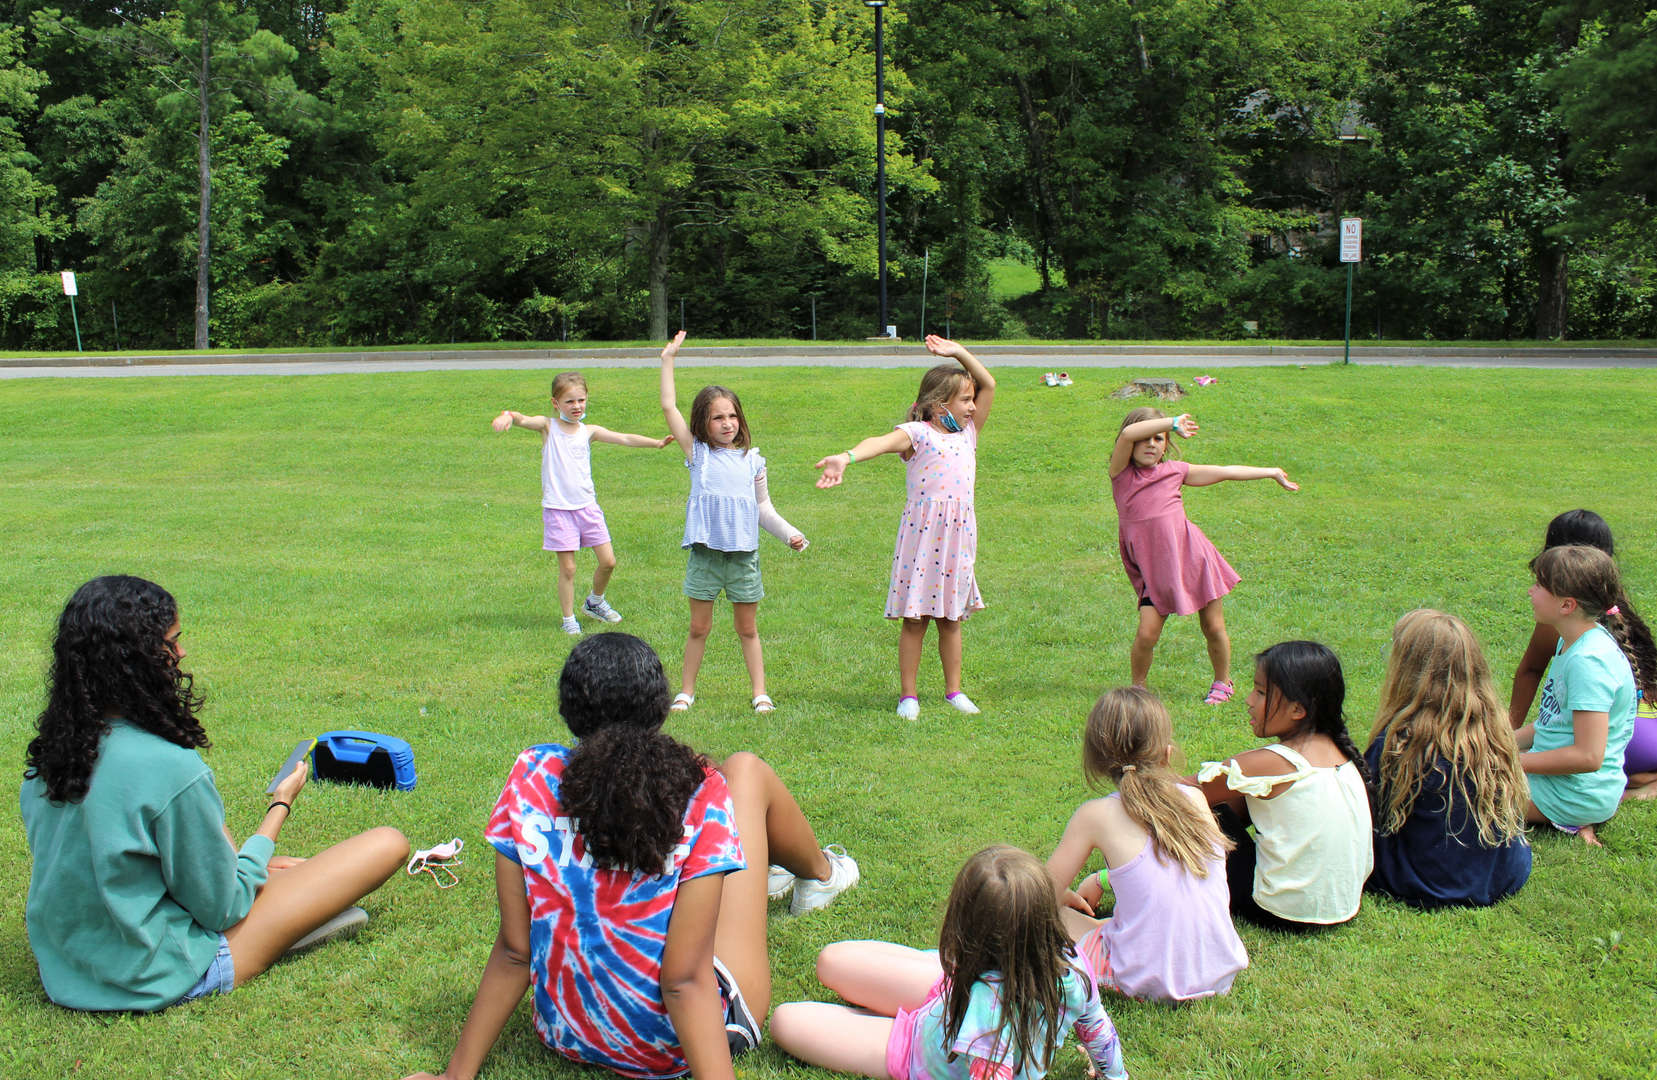 Young campers practice their routine in advance of the talent show.